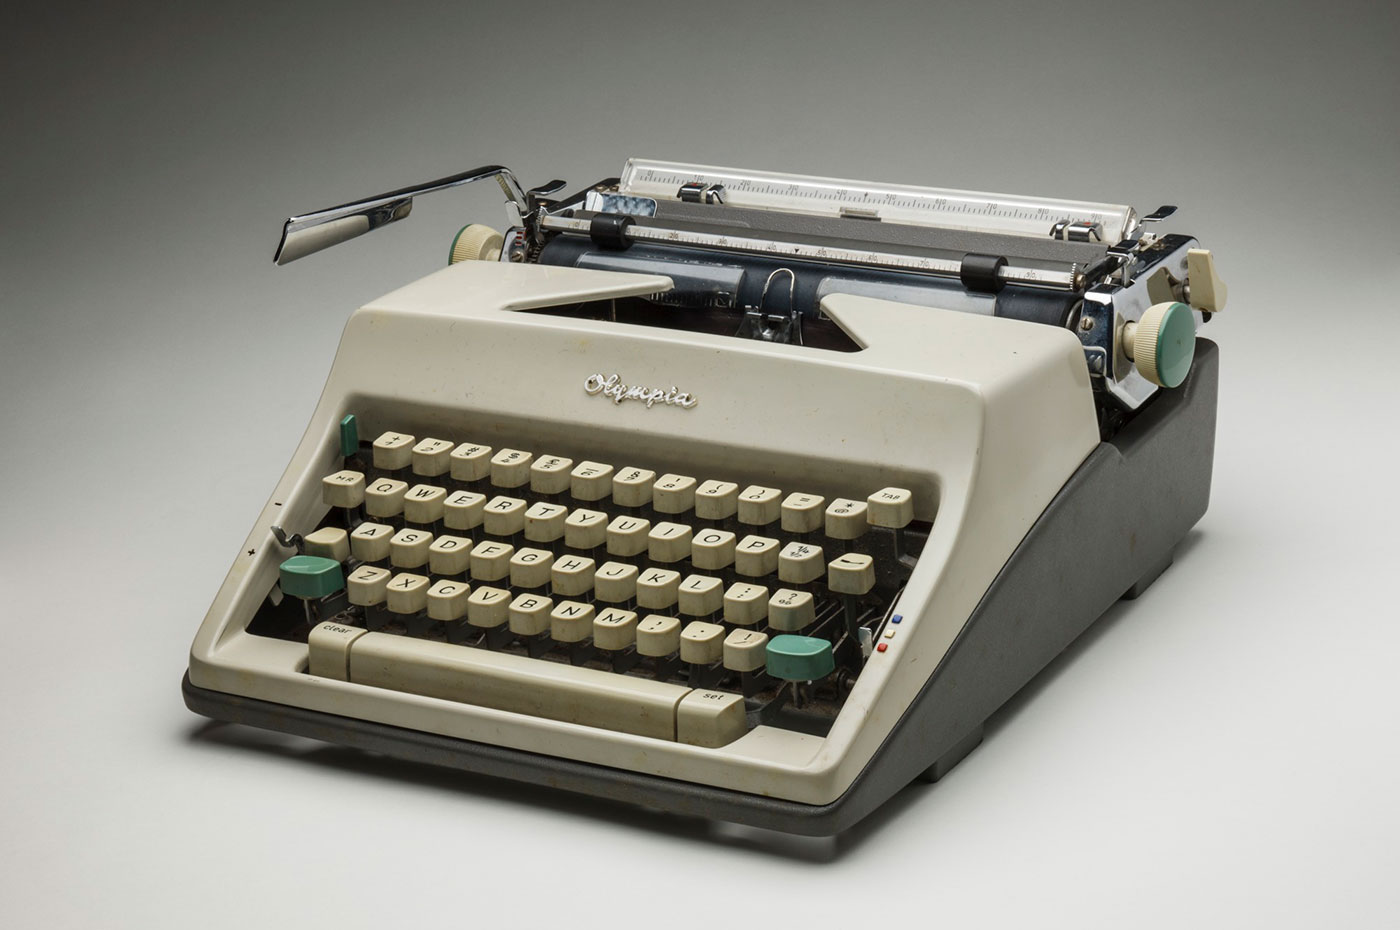 A metal and plastic 'Olympia' brand typewriter with an attached case. The typewriter has a grey plastic base and a bone coloured body with green turning knobs. 'OLYMPIA WERKE AG. WILHELMSHAVEN / Made in Western Germany' is written on a silver plaque screwed to the back of the typewriter. - click to view larger image